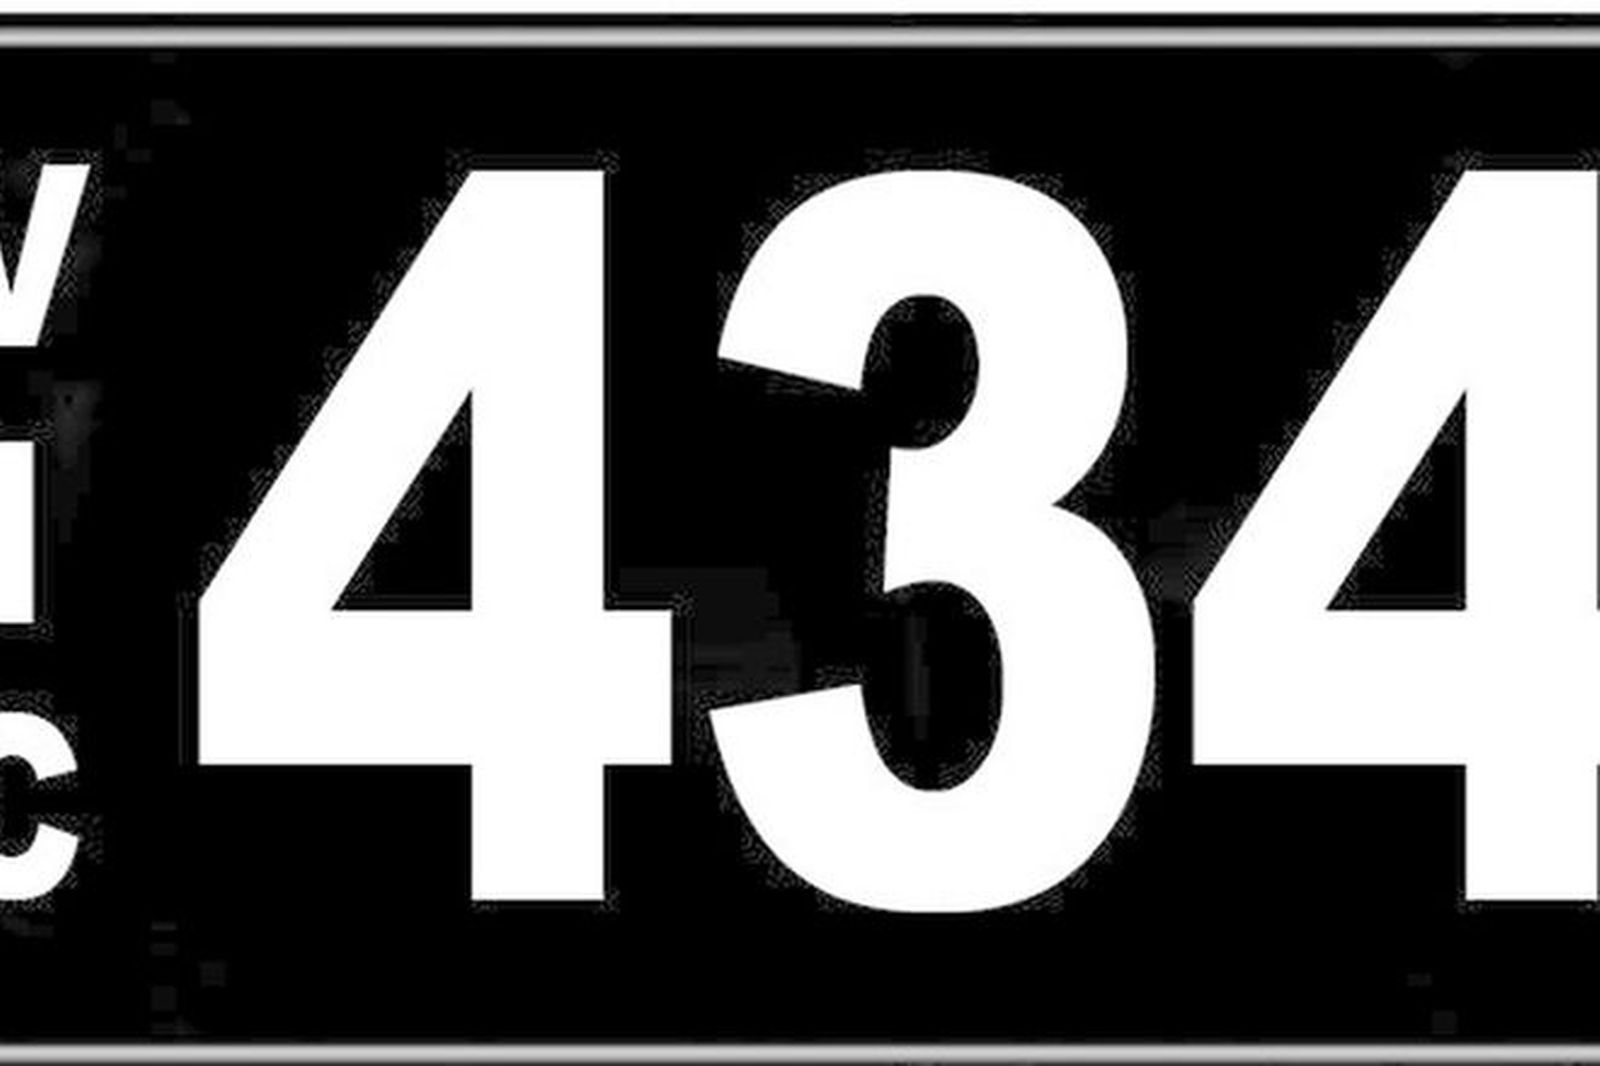 Number Plates - Victorian Numerical Number Plates - '434'